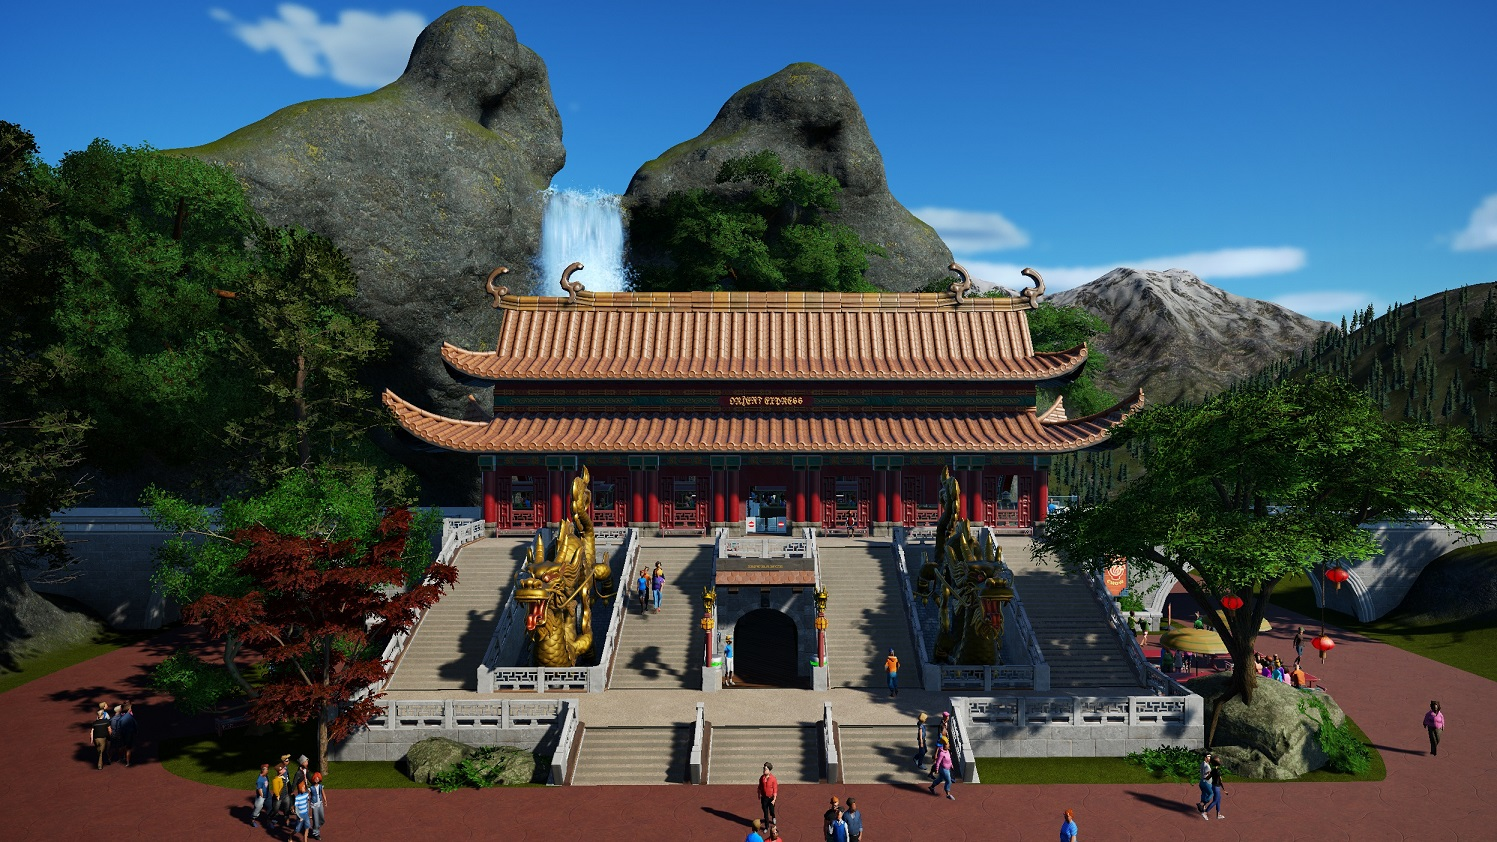 Train Station: Oriënt Expess | Frontier Forums